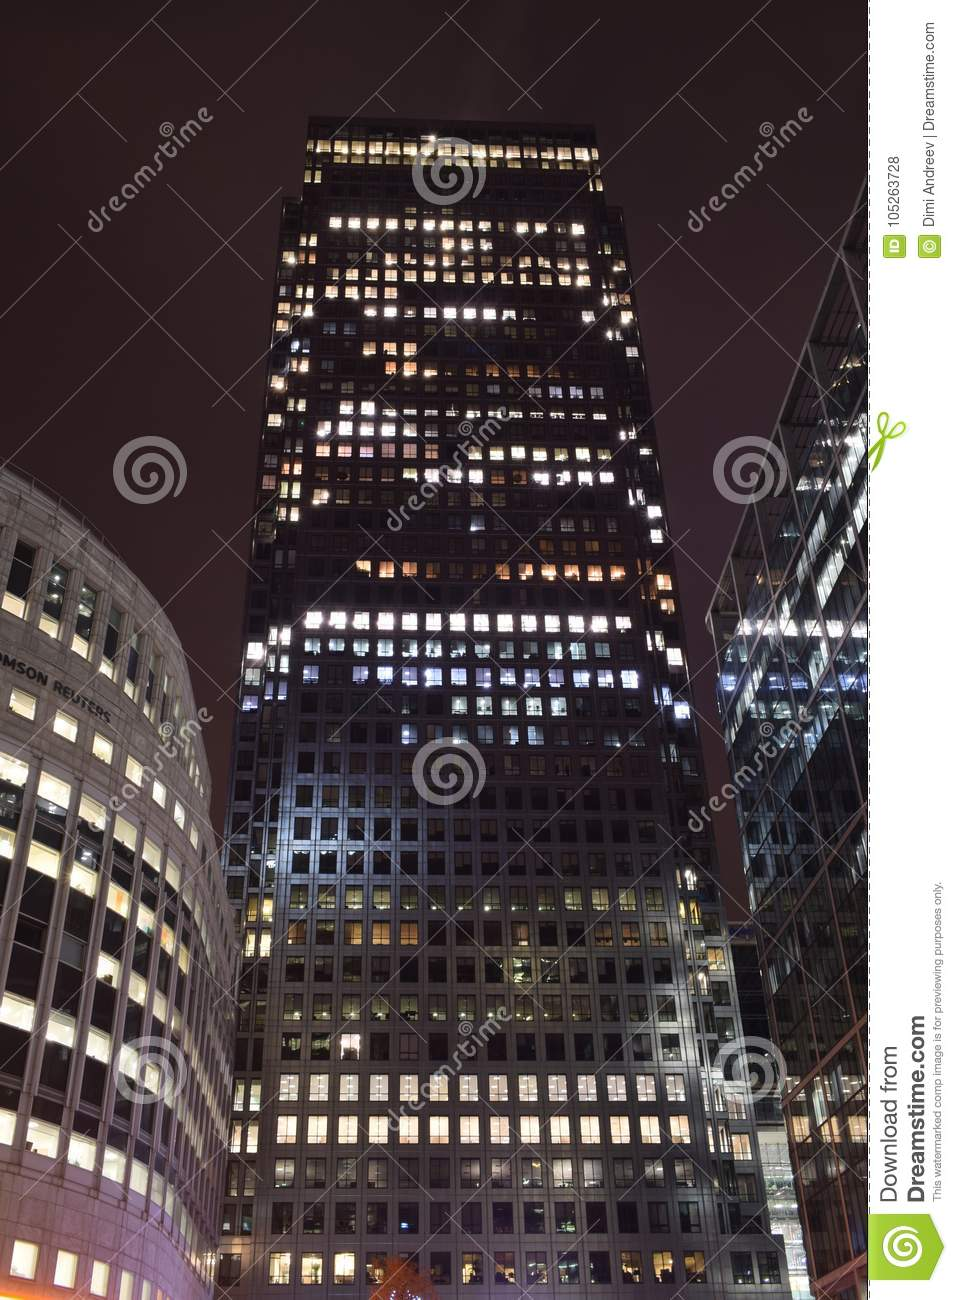 London UK 02/12/2017  The City Of The Europe Bank Leaders  HSBC